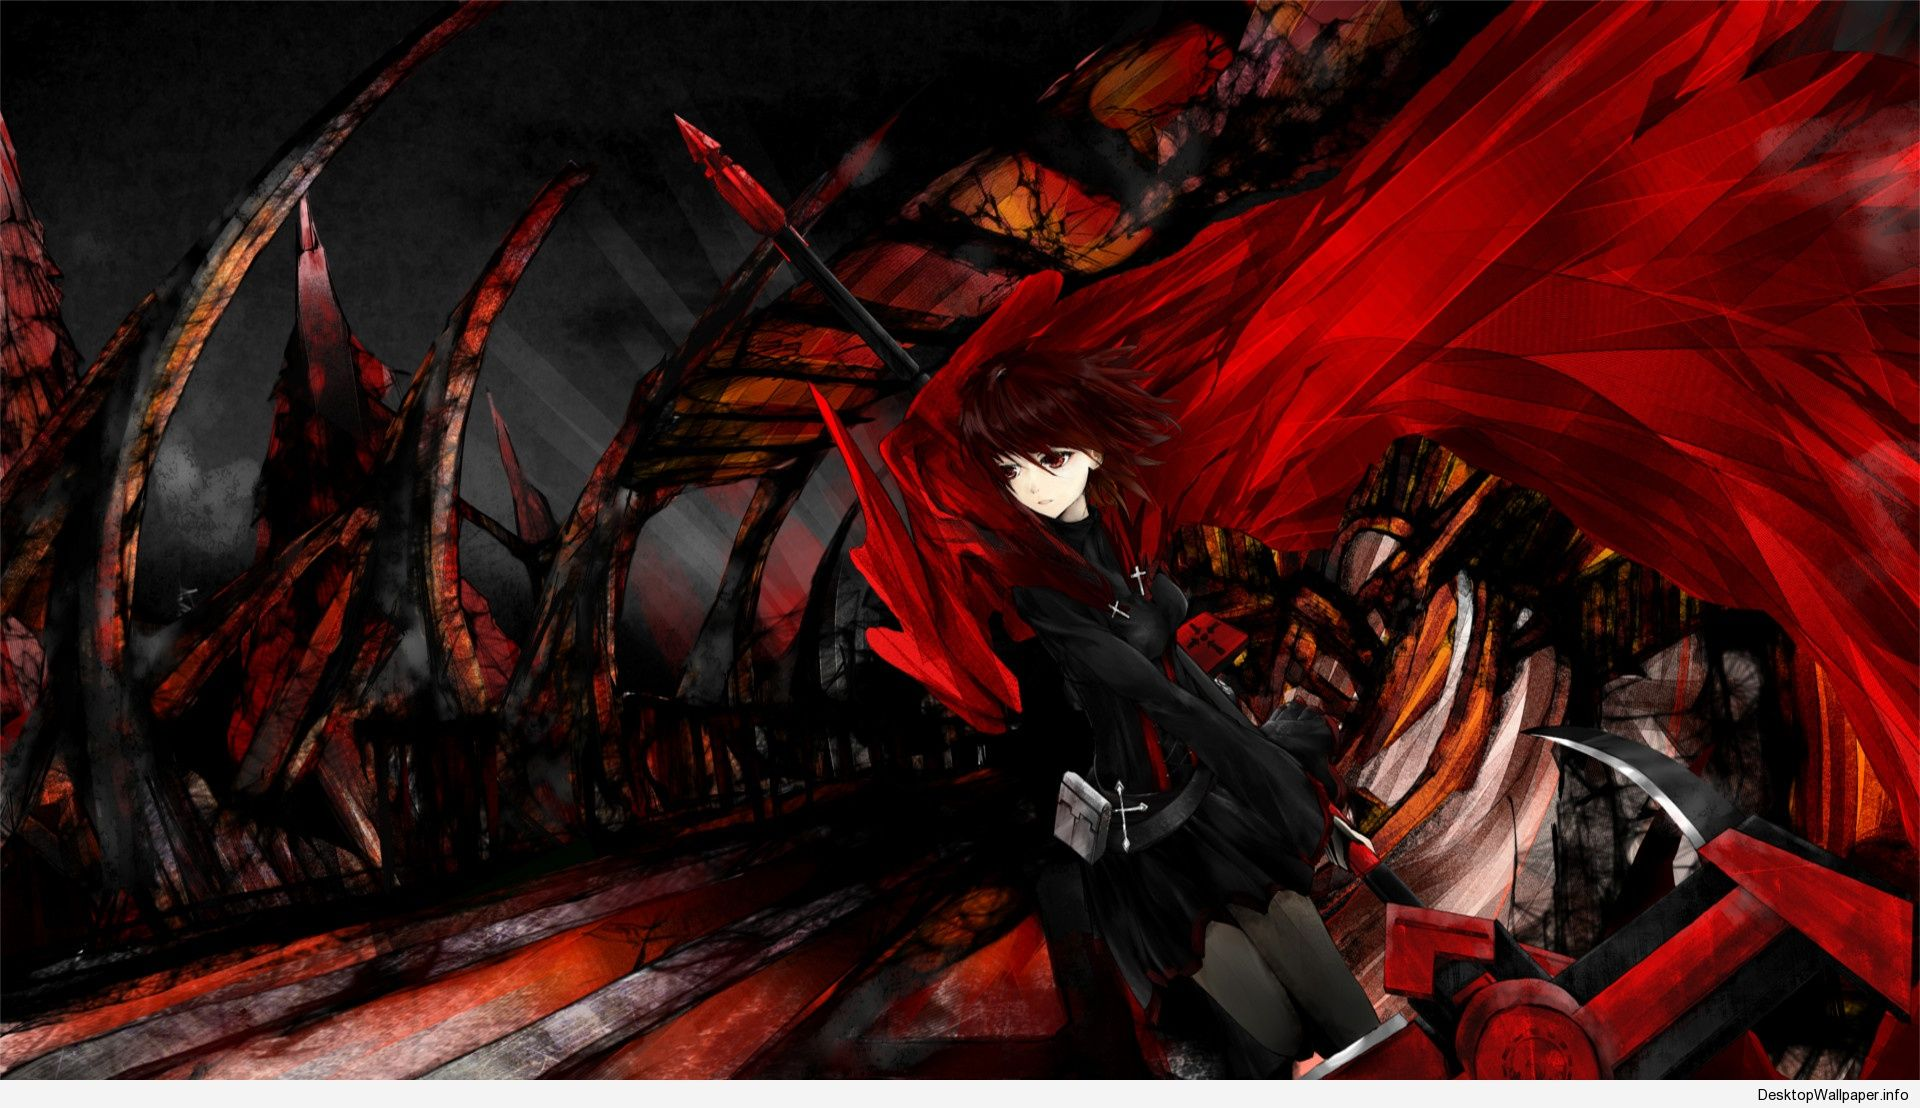 Black And Red Anime Wallpaper Http Desktopwallpaper Info Black And Red Anime Wallpaper 6373 Anime Black Wallpaper Rwby Wallpaper Rwby Anime Wallpaper